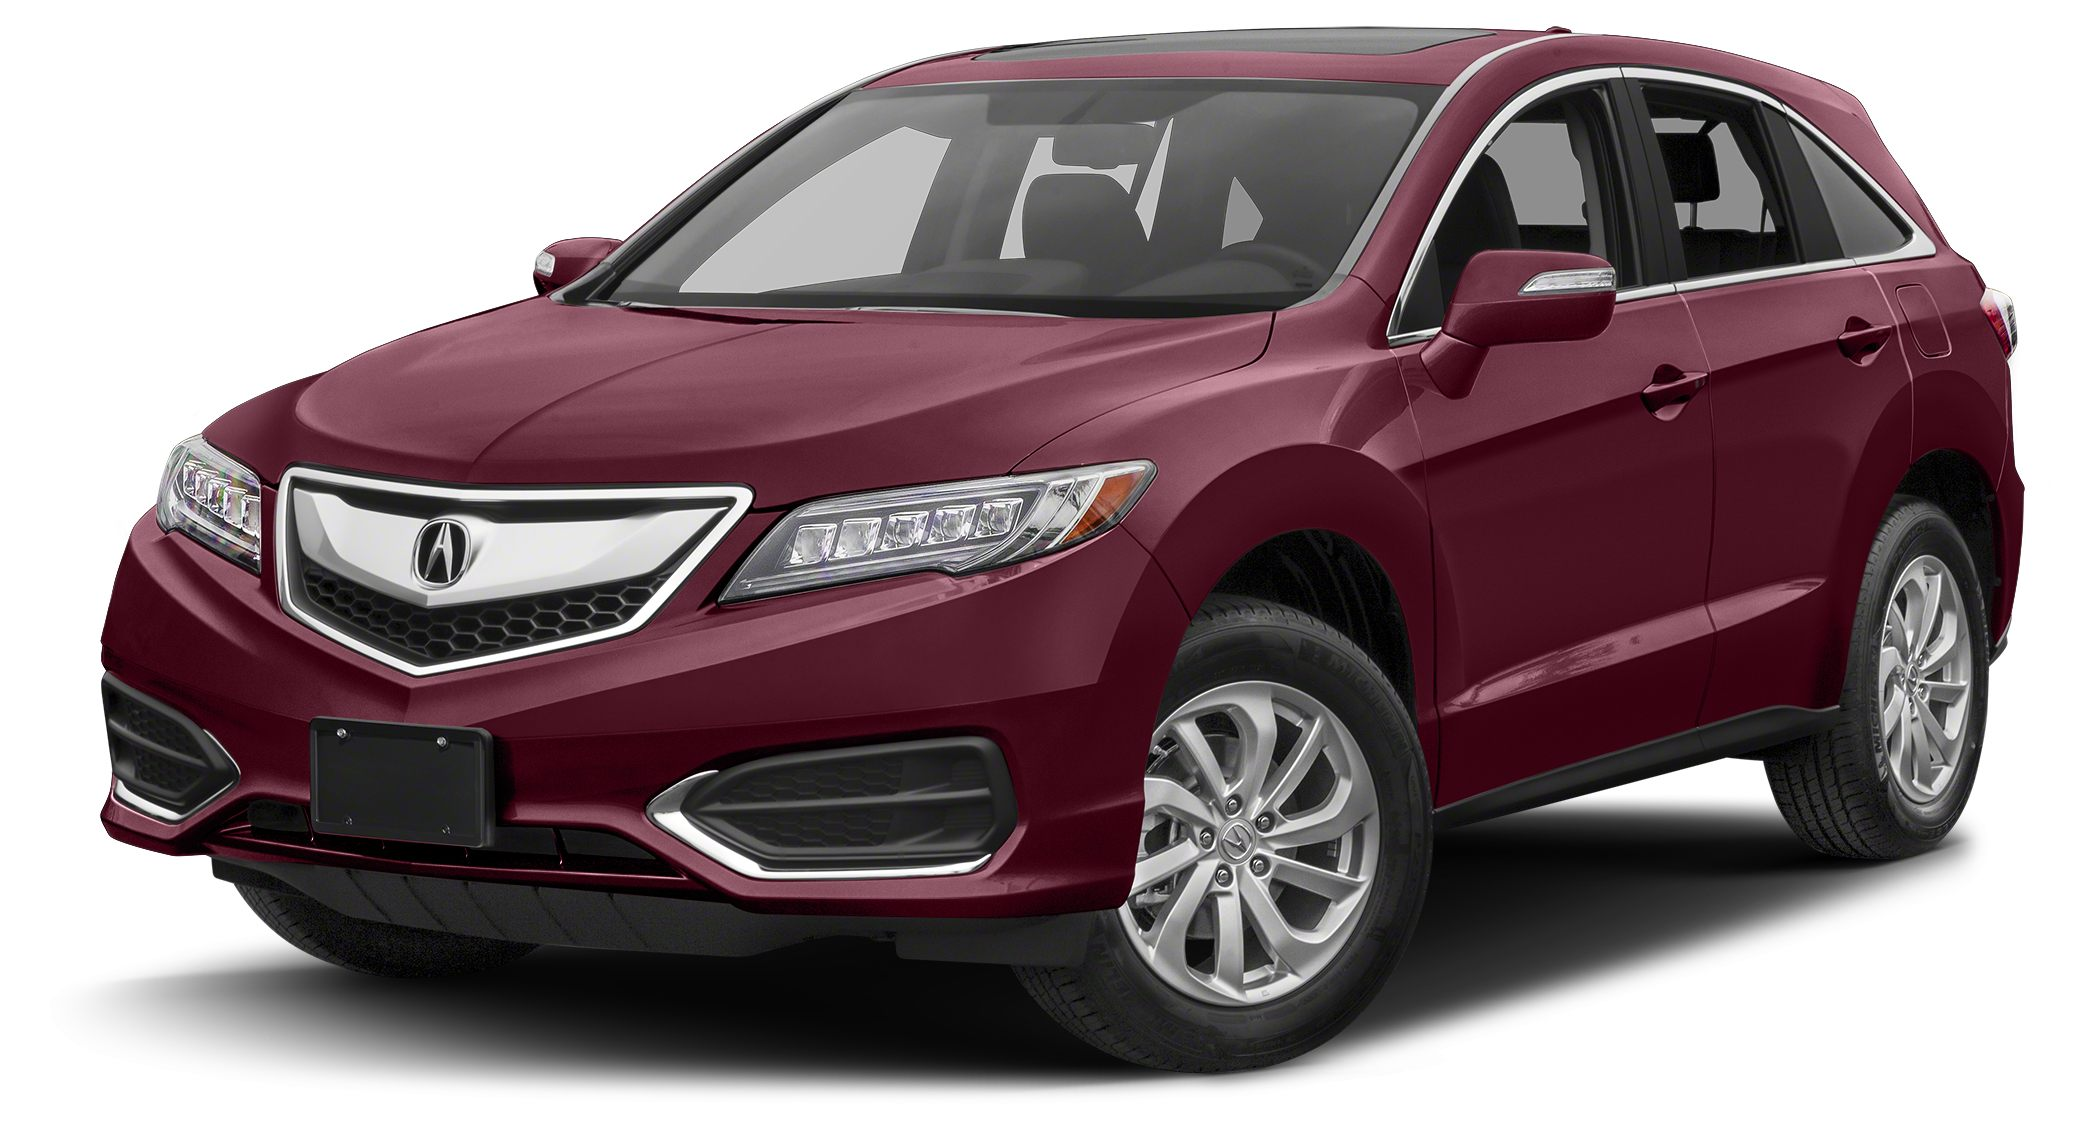 2017 Acura RDX Technology Miles 5089Color Basque Red Pearl II Stock U4830 VIN 5J8TB3H58HL021